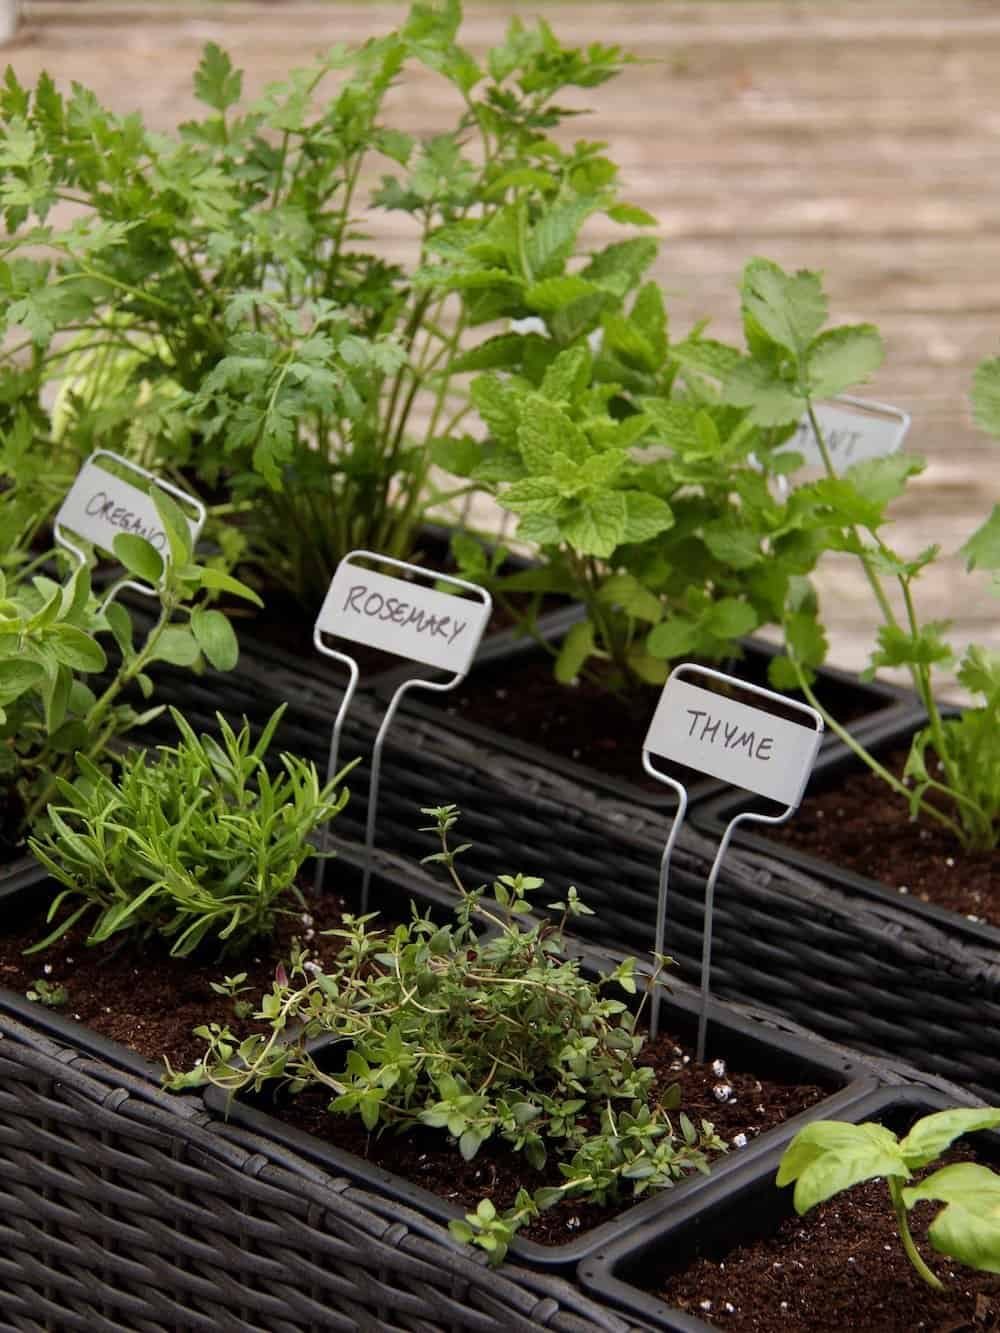 Herb Garden Planter Collection Showing Thyme, Rosemary, Mint, And Other Herb  Plants Growing